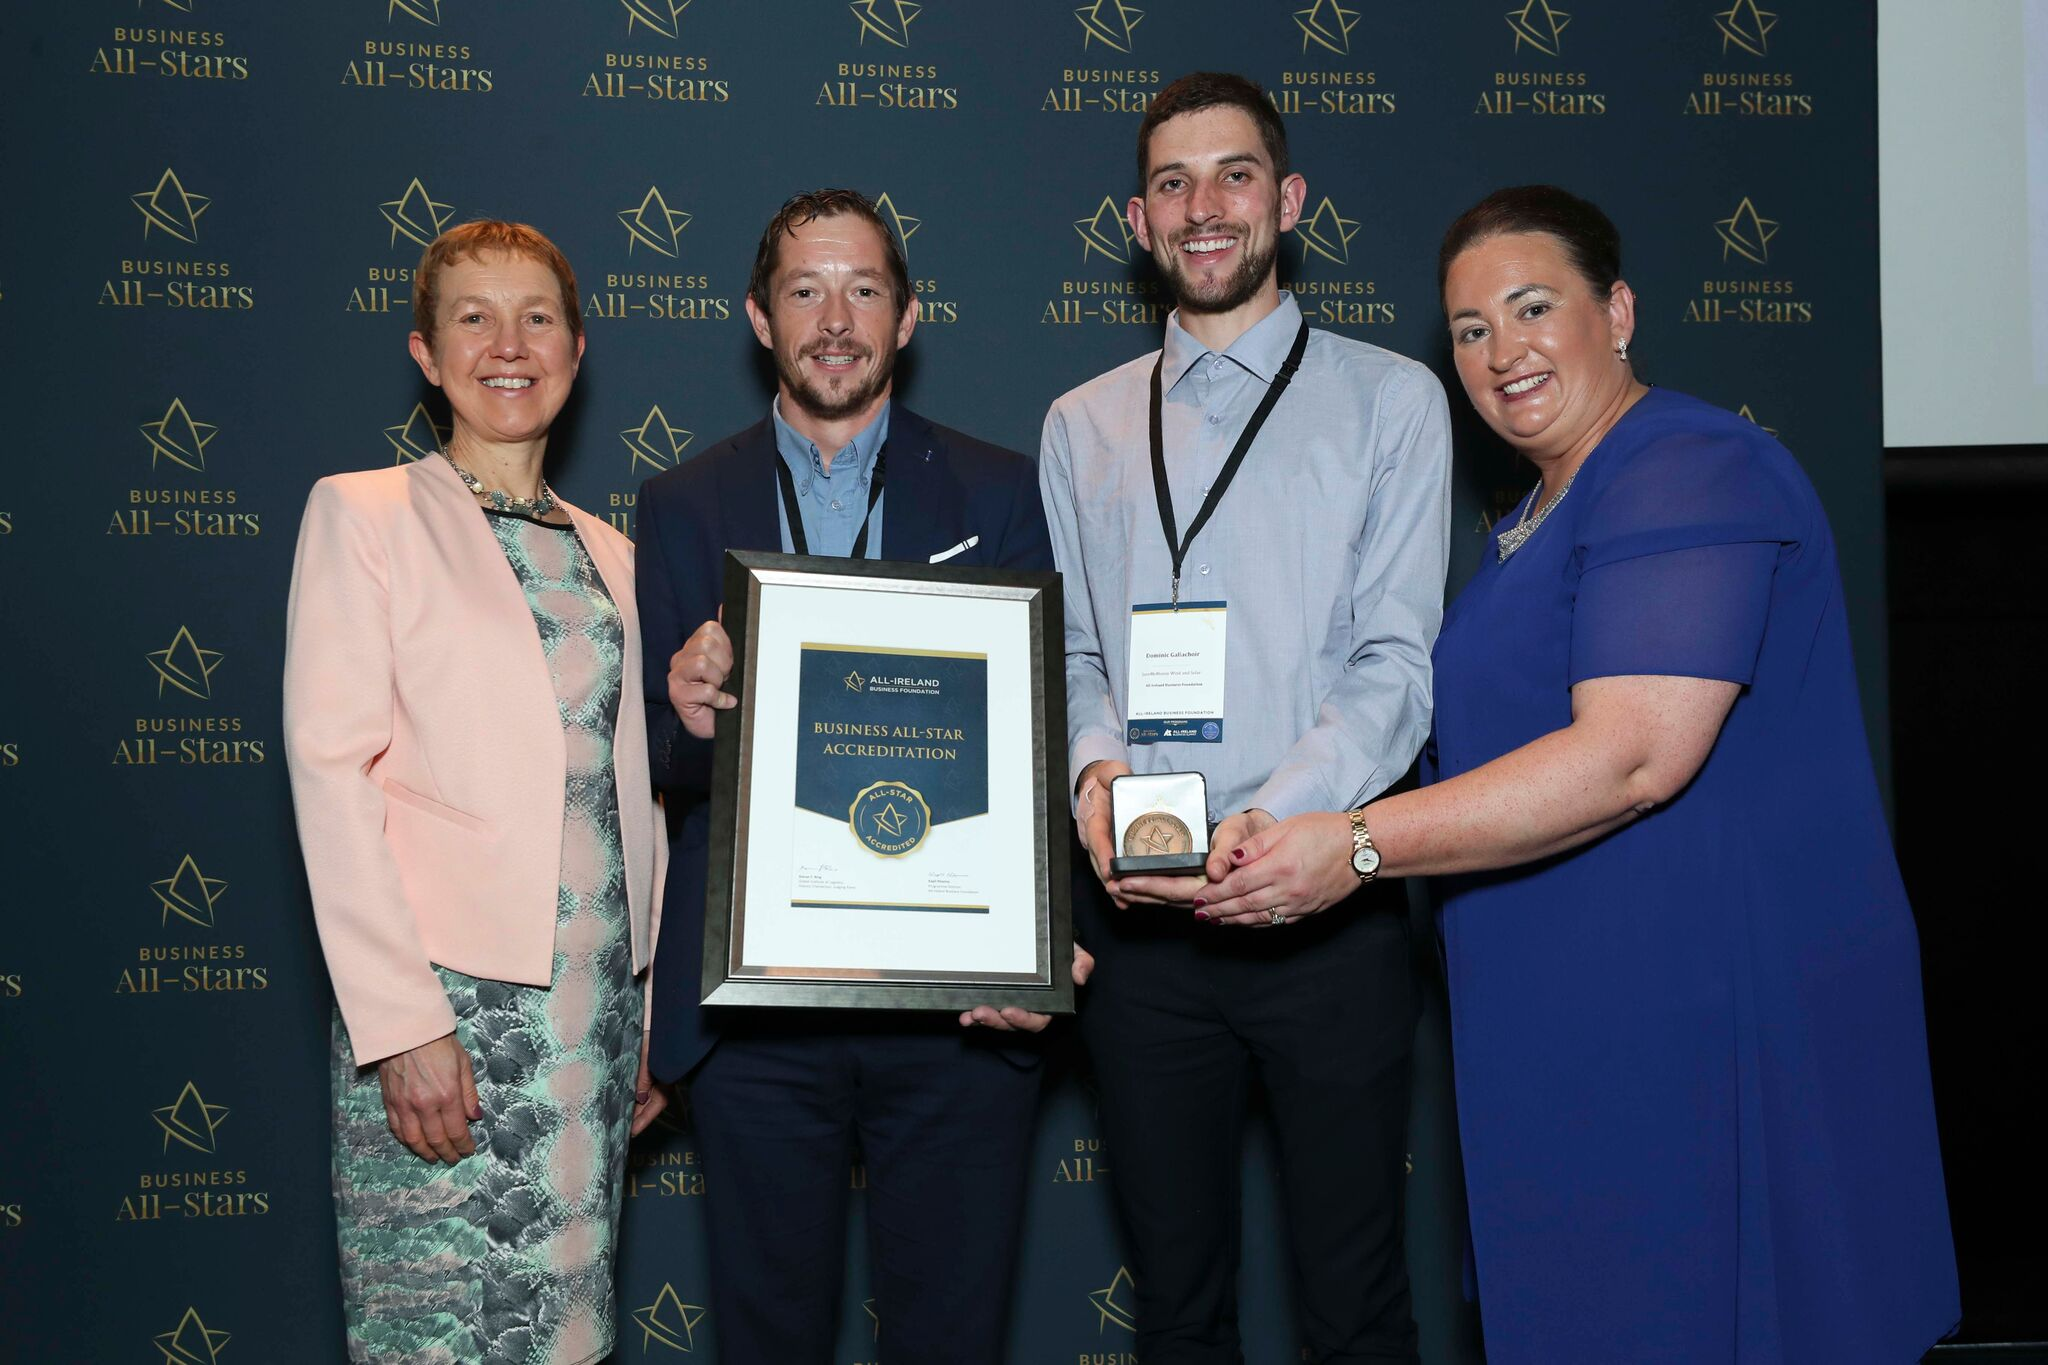 Zoltan Nemeth and Dominic Gallachoir - SaveMeMoney Wind and Solar receiving Business All-Star Accreditation at Croke Park from Dr Briga Hynes, Kemmy Business School, University of Limerick and Elaine Carroll CEO, All-Ireland Business Foundation.